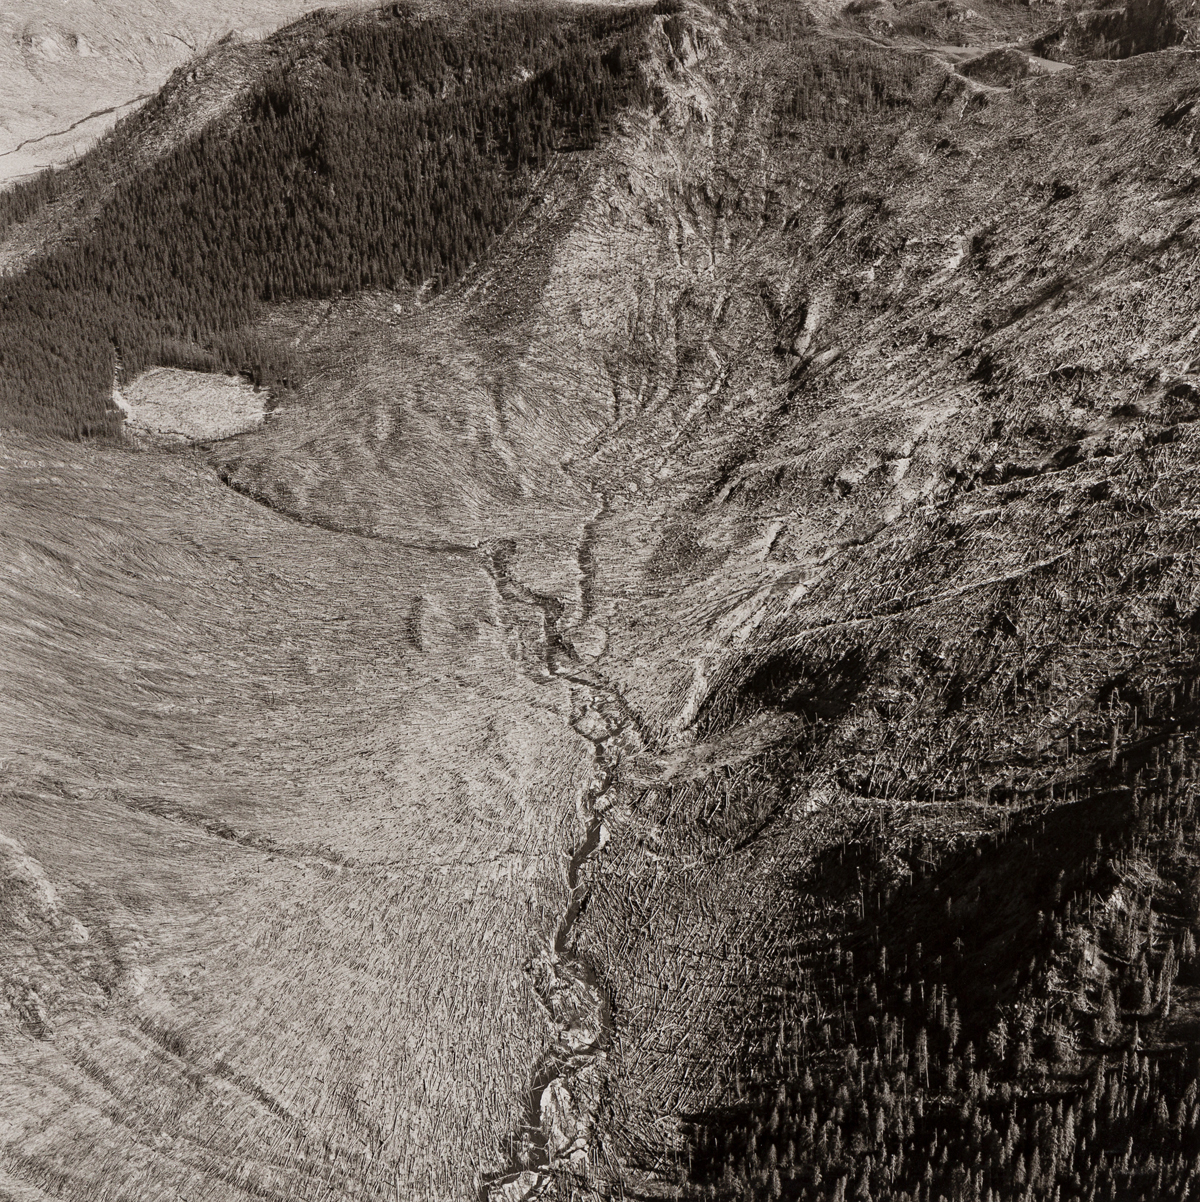 EMMET GOWIN (1941- ) A trio of photographs from Mount Saint Helens series.